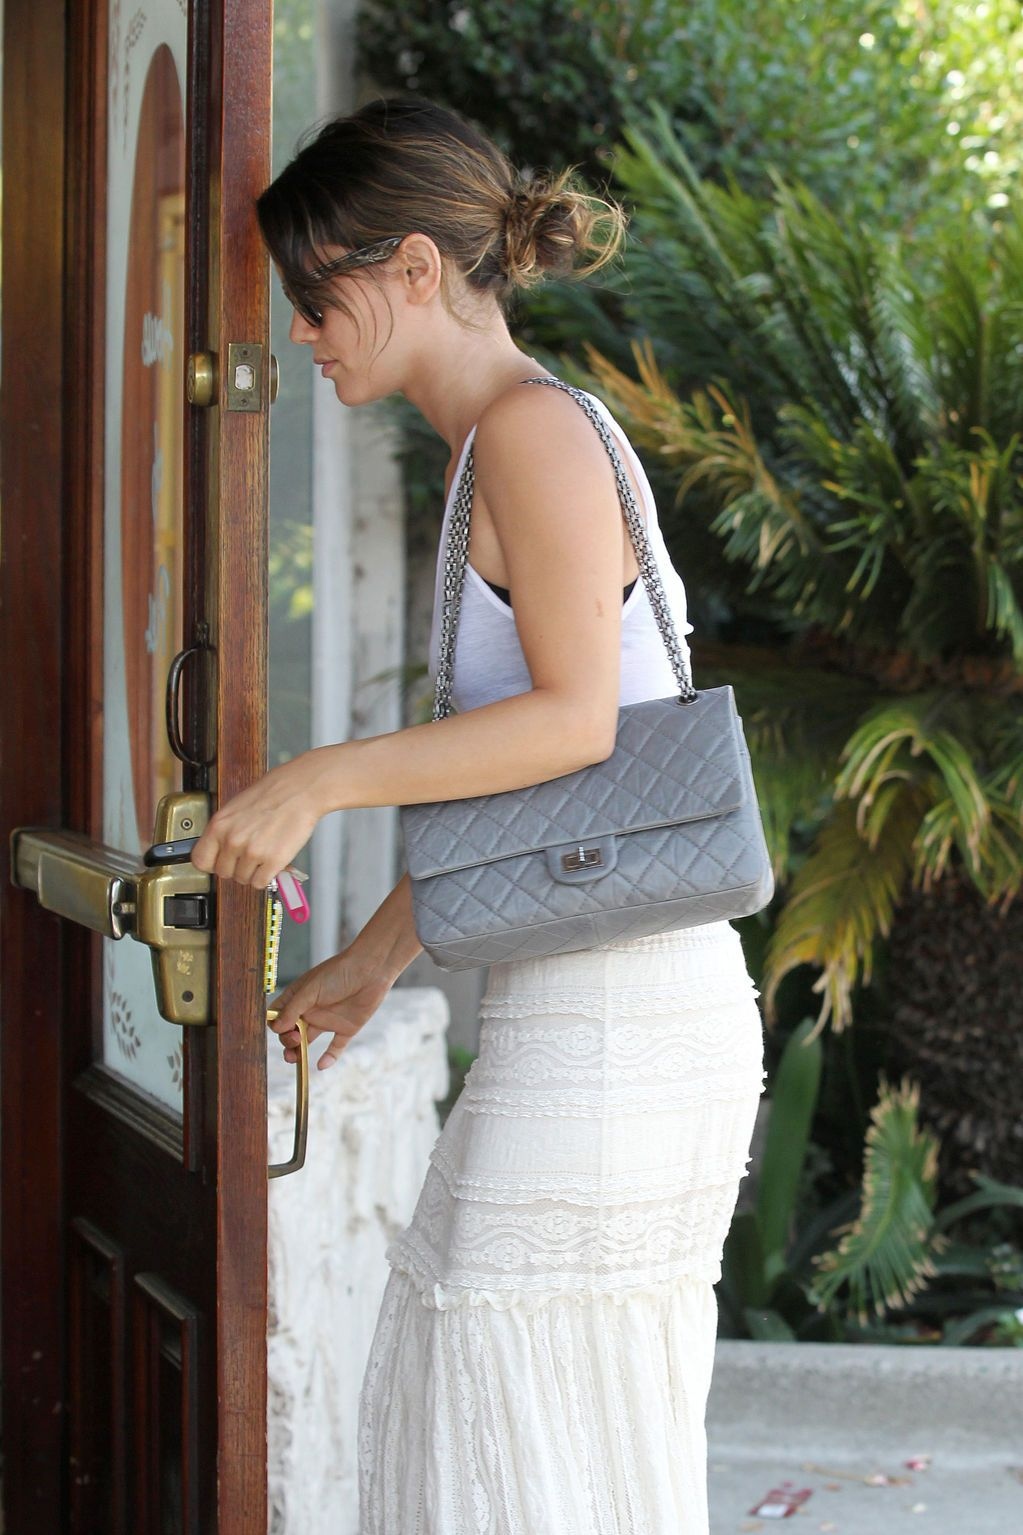 a18ff1b7f02d06 Chanel 10a Grey Reissue 226, SHW | Outfit | Pinterest | Gray, Chanel ...